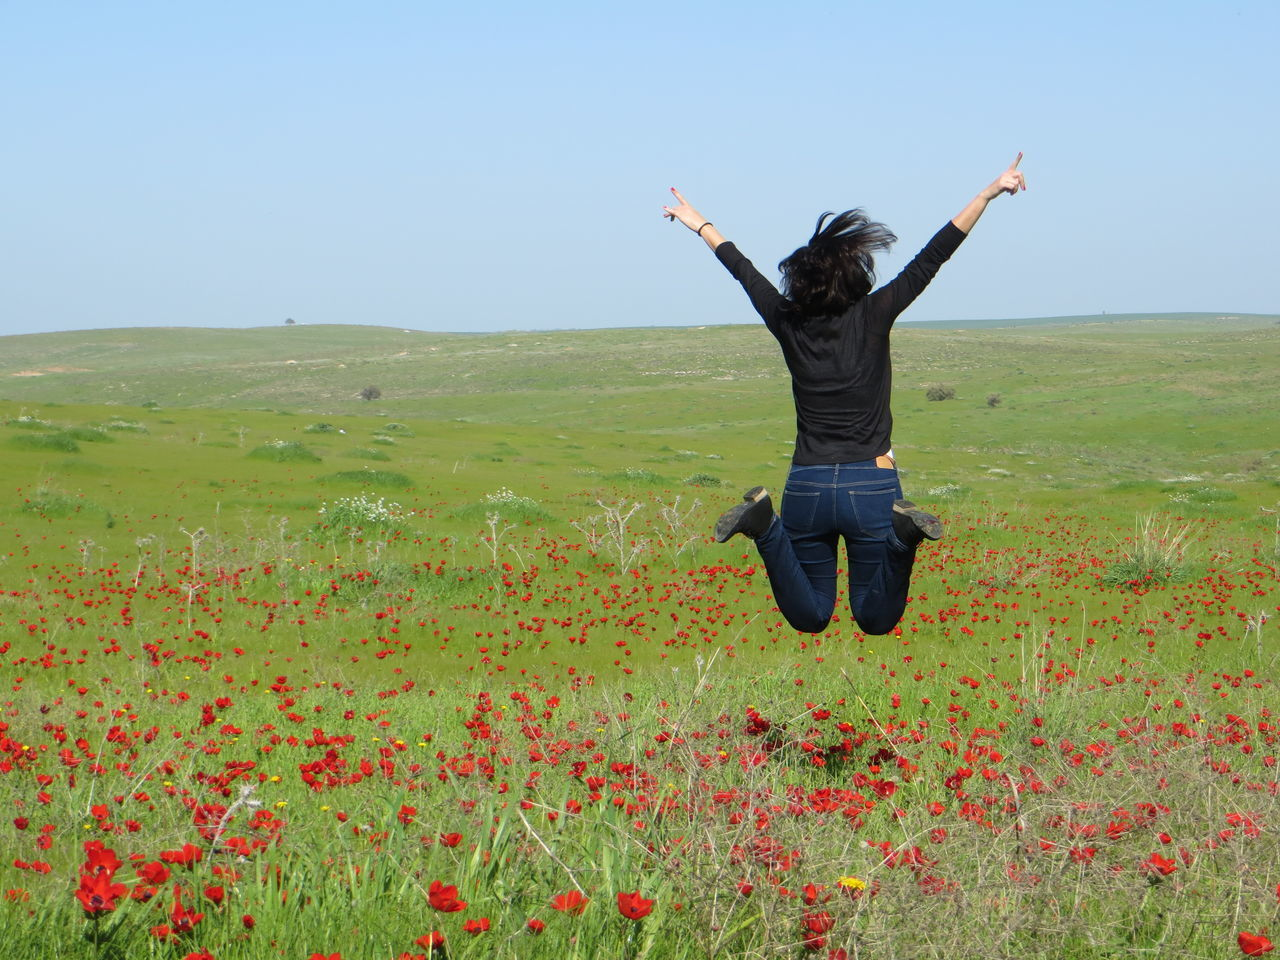 Adult Beauty In Nature Clear Sky Field Flower Freshness Full Length Grass Happiness Happiness Human Hand Jump Jumping Landscape Nature One Person Outdoors People Poppies  Poppy Poppy Fields Rear View Rural Scene Spring Flowers Springtime